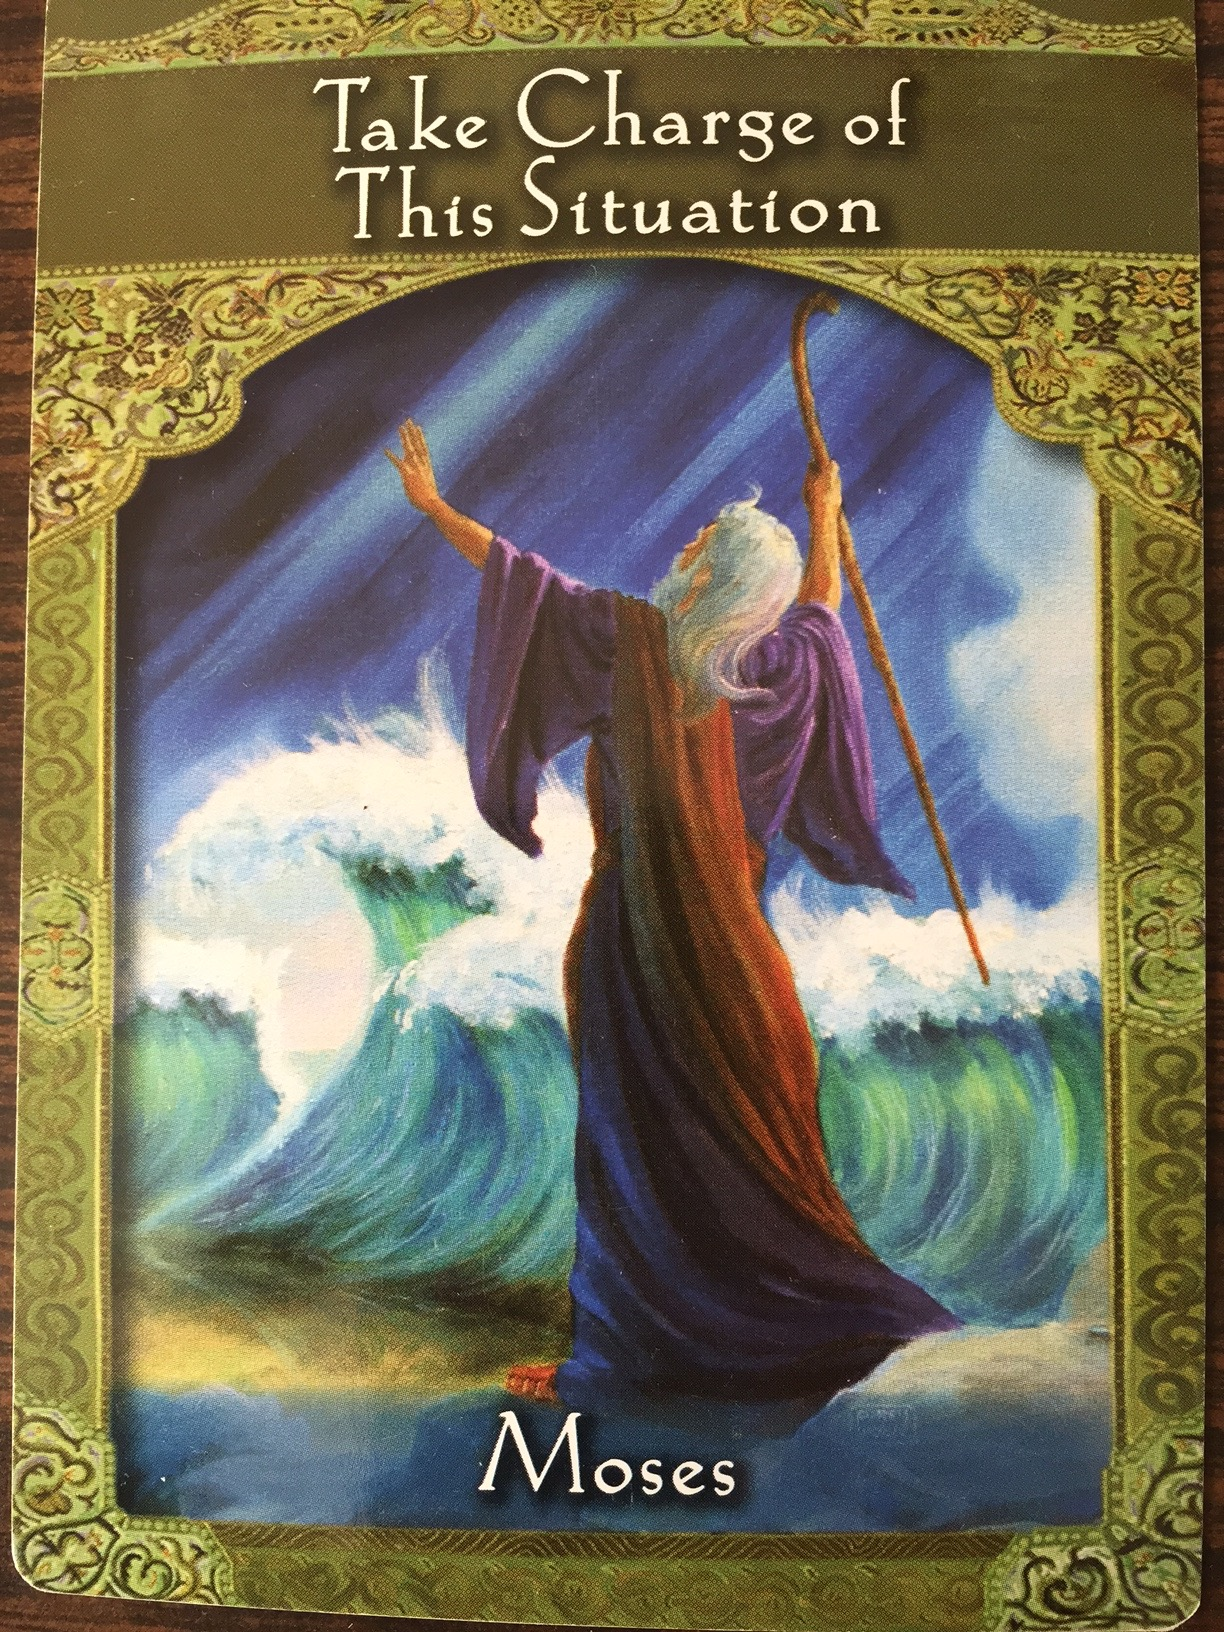 Moses-Ascended Mater Card by Doreen Virtue